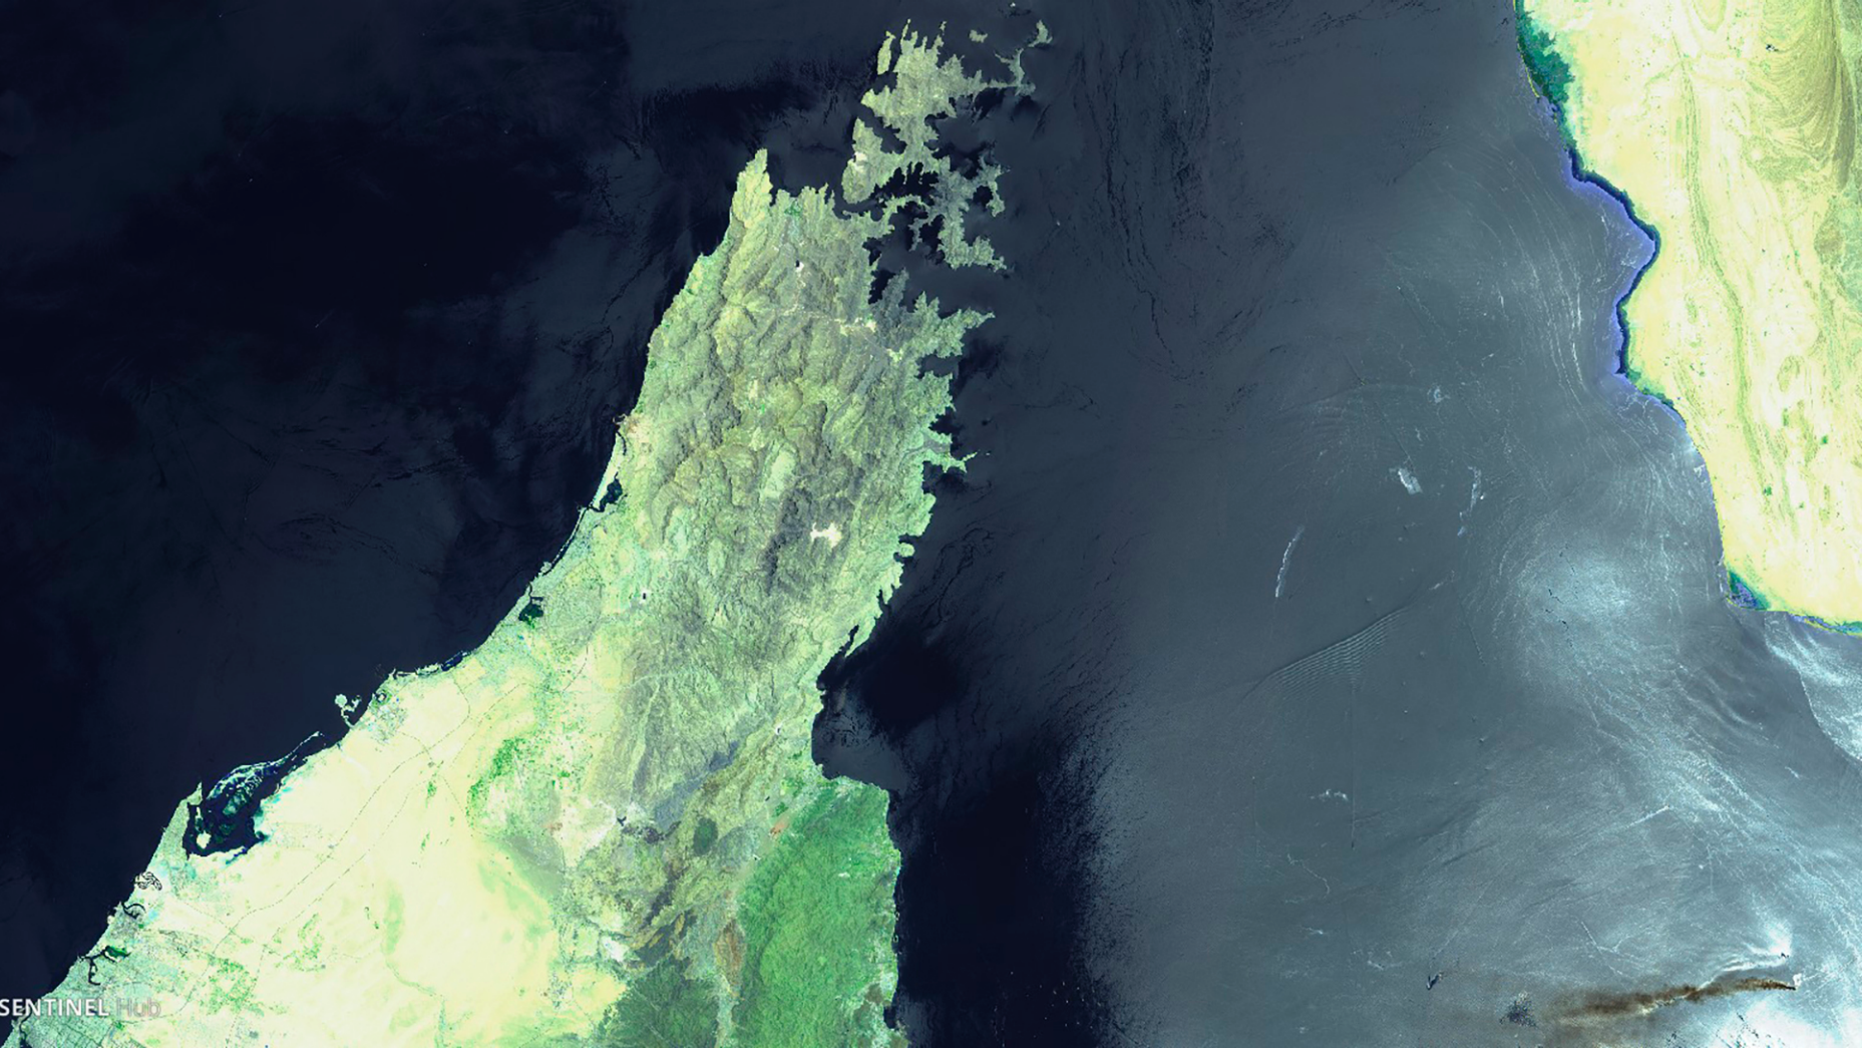 This June 13, 2019 false-color image from the European Commission's Sentinel-2 satellite that was processed by Sinergise's Sentinel Hub website shows the Norwegian-owned MT Front Altair, bottom right, ablaze with smoke rising from it in the Gulf of Oman after what the U.S. described as a limpet mine attack by Iran. Iran has denied being involved in the incident. The land mass to the left is the United Arab Emirates and Oman on the Arabian Peninsula. The land mass in the upper right hand corner is Iran. (European Commission via AP)